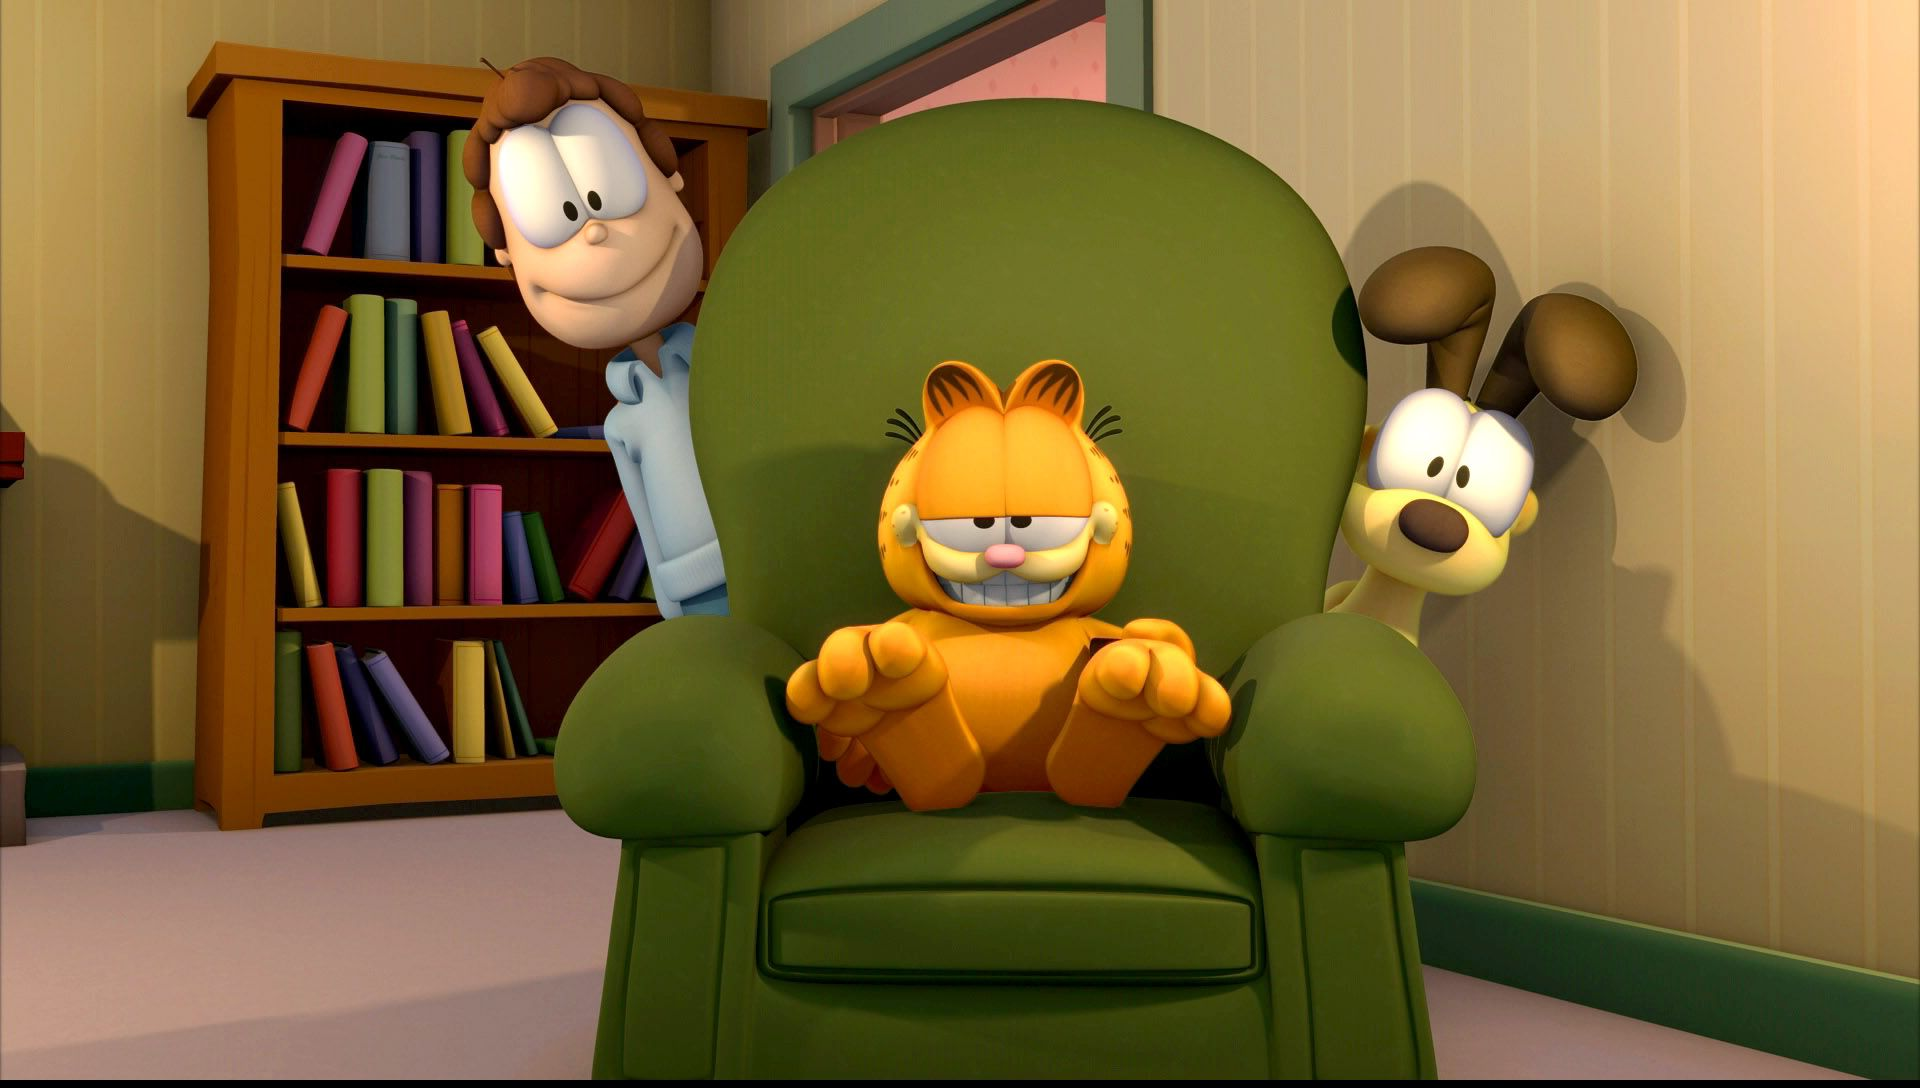 Jon Garfield And Odie Garfield Wallpaper Animated Cartoons Disney Doodles